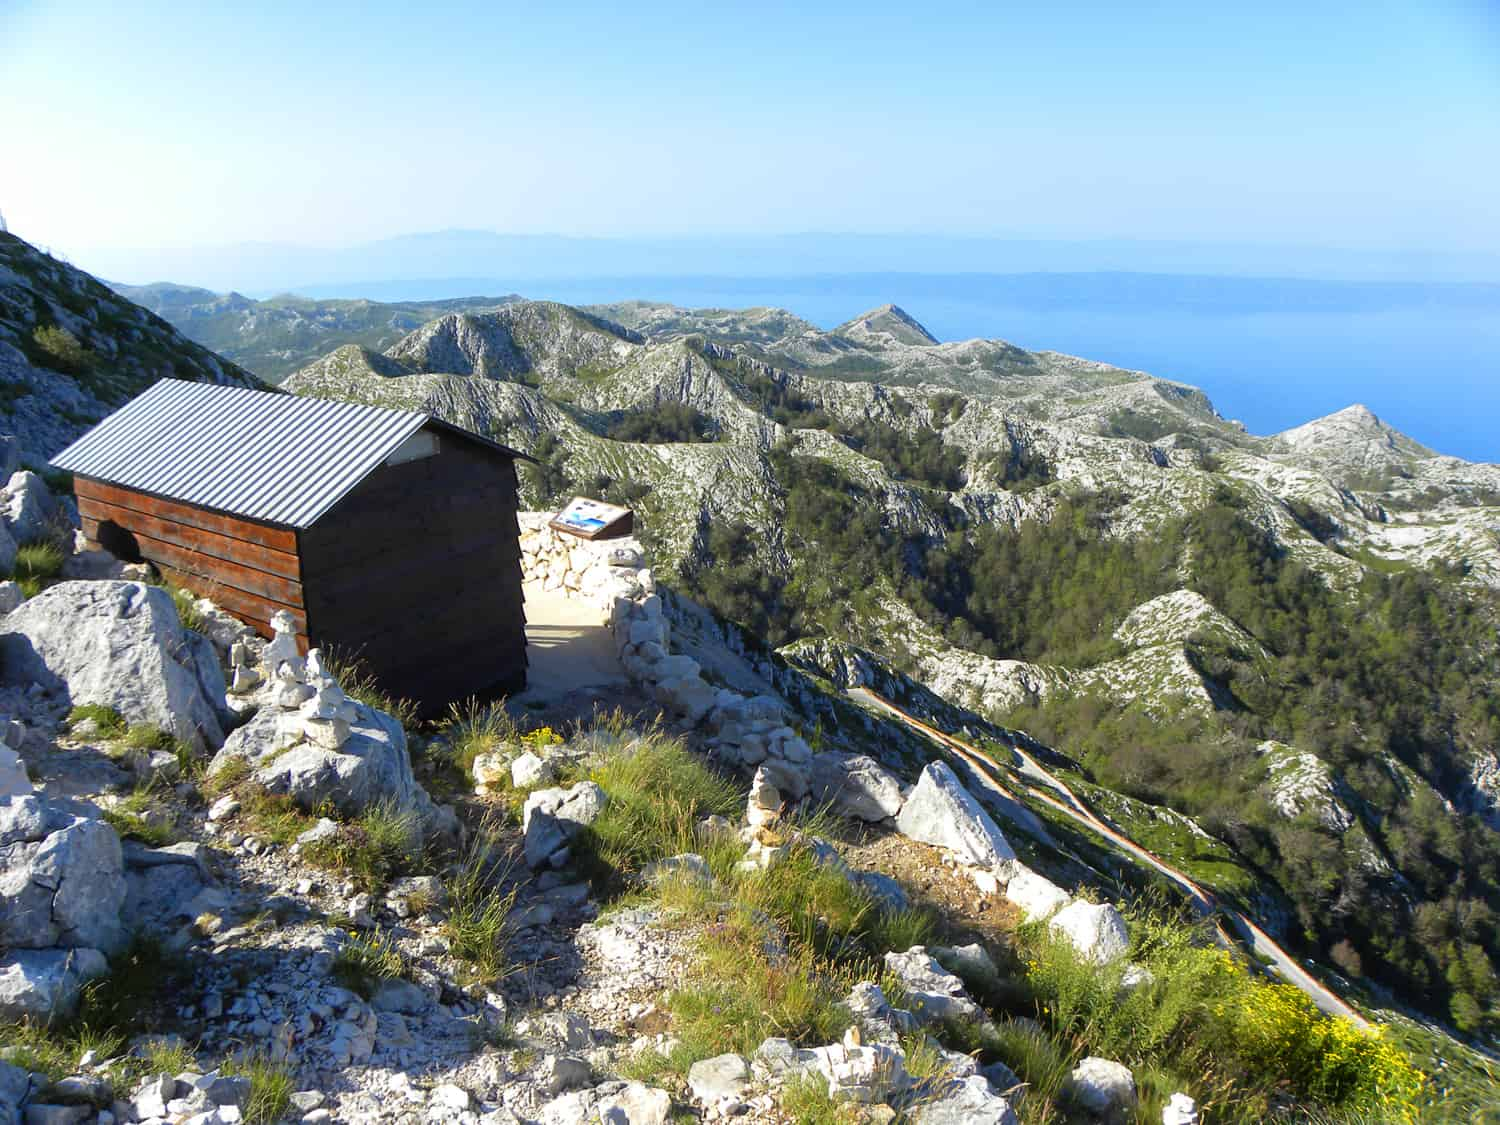 hut on Sv. Jure, 1 762 m, mt biokovo